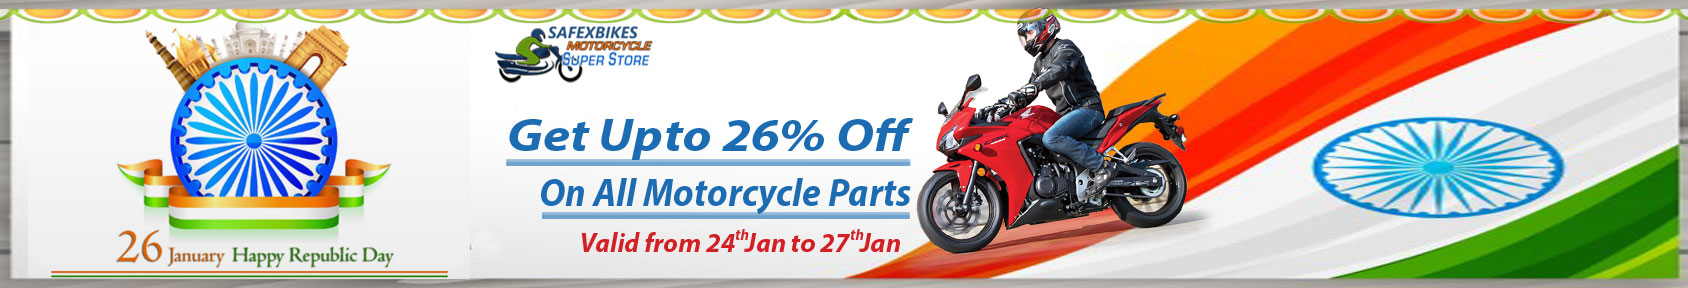 Special offers on Genuine Motorcycle Spare Parts And Accessories - Republic Day upto 26percent off